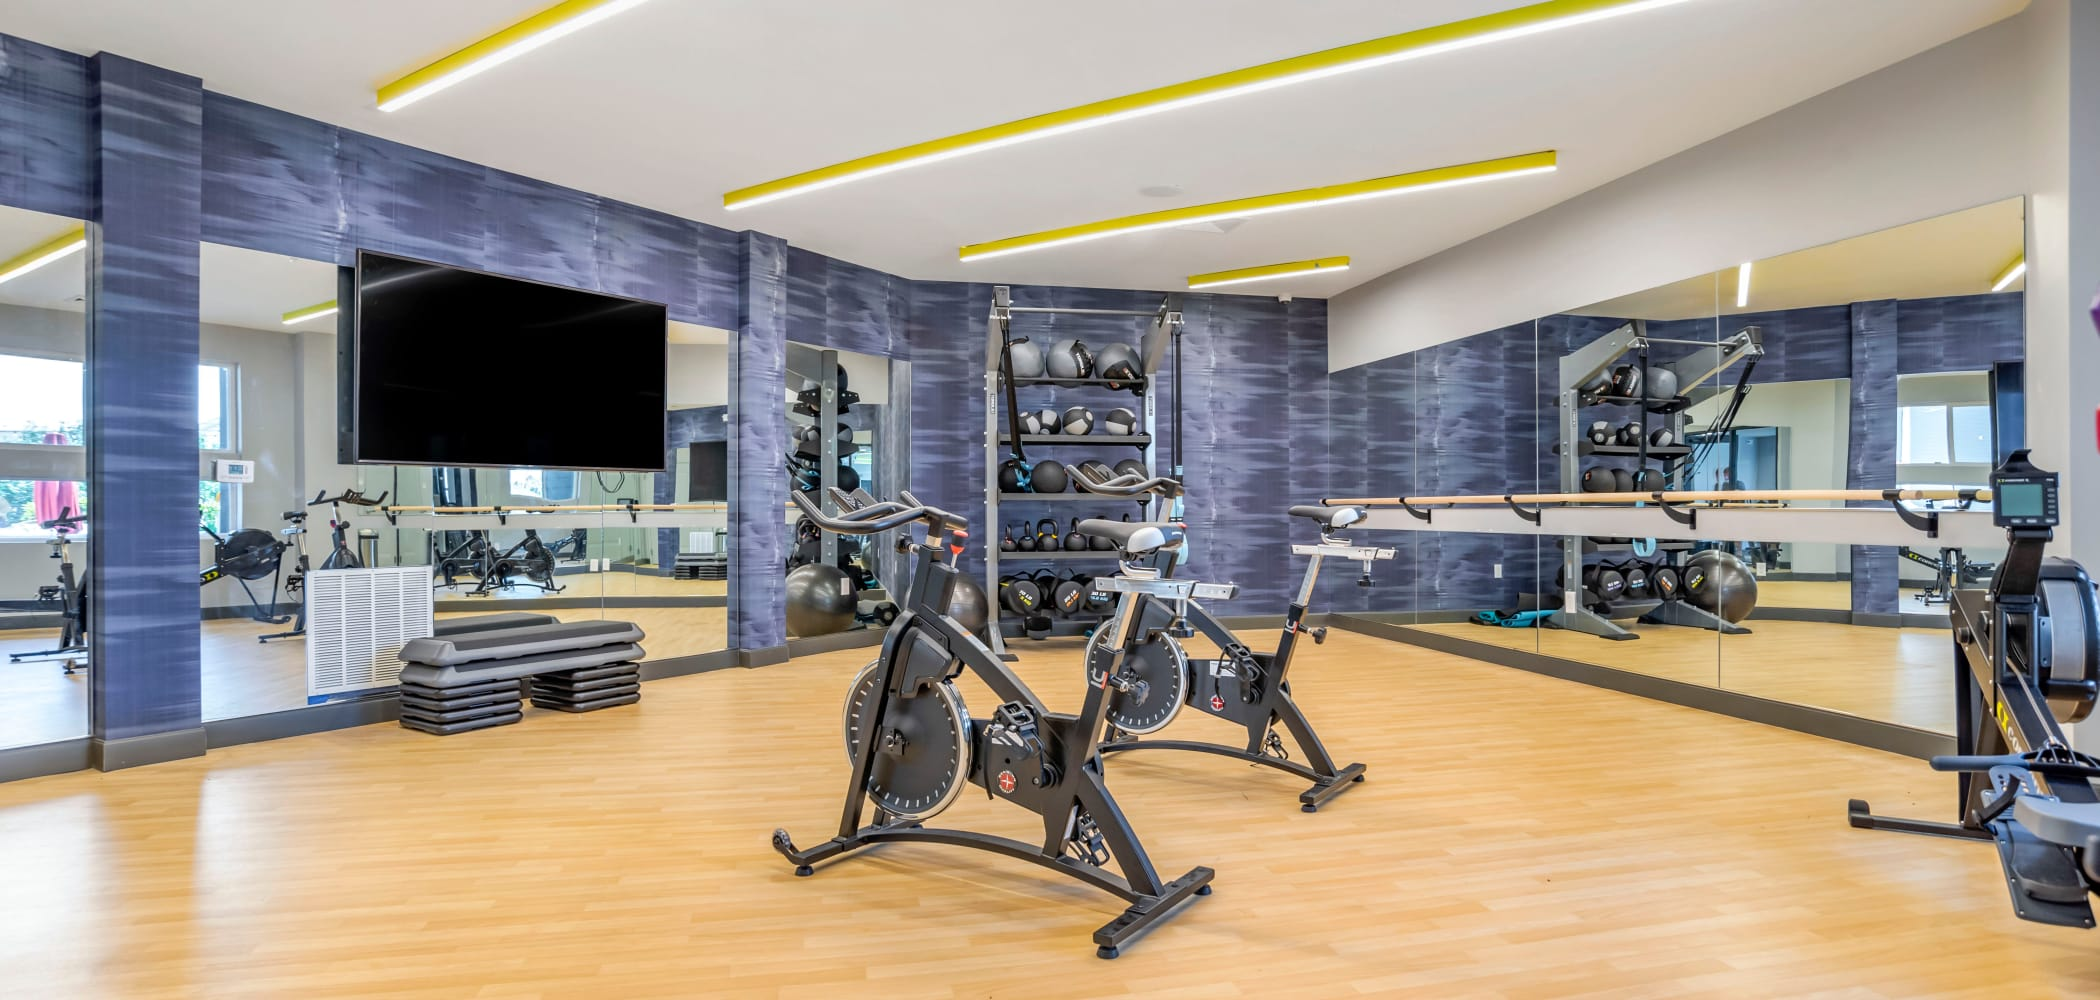 Fully equipped fitness center at UNCOMMON Tuscaloosa in Tuscaloosa, Alabama